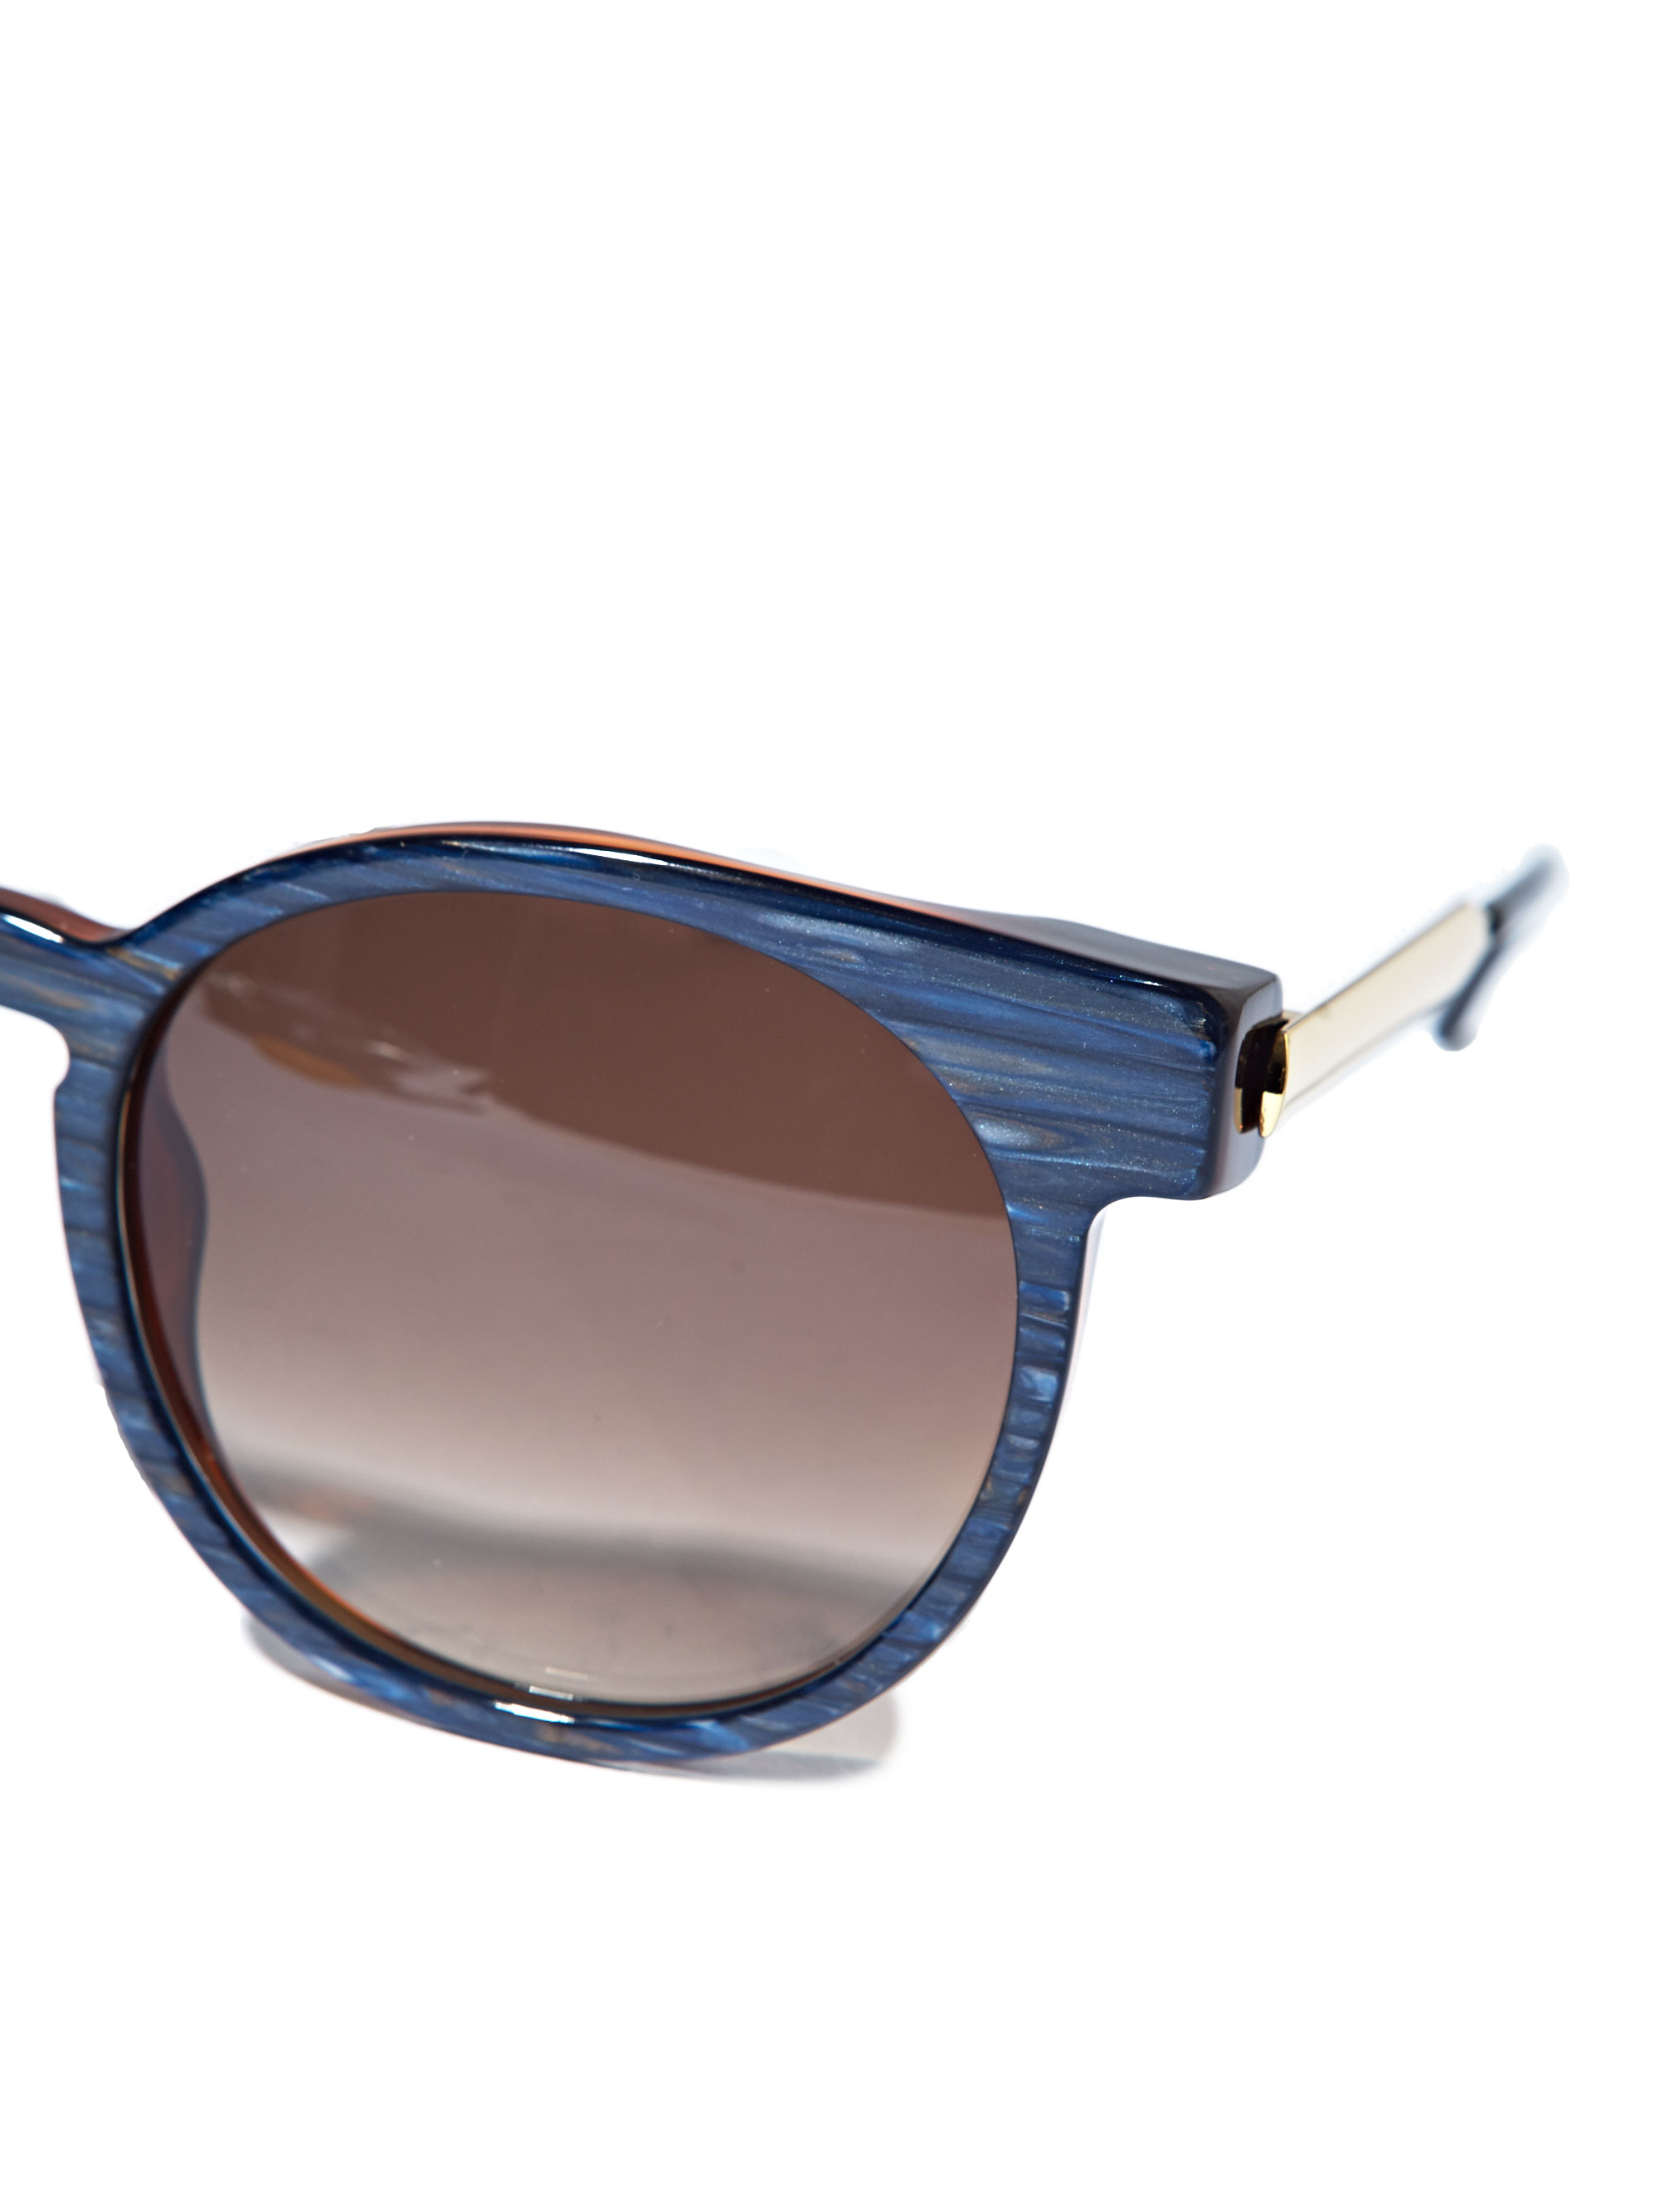 Thierry Lasry Mens Sunglasses